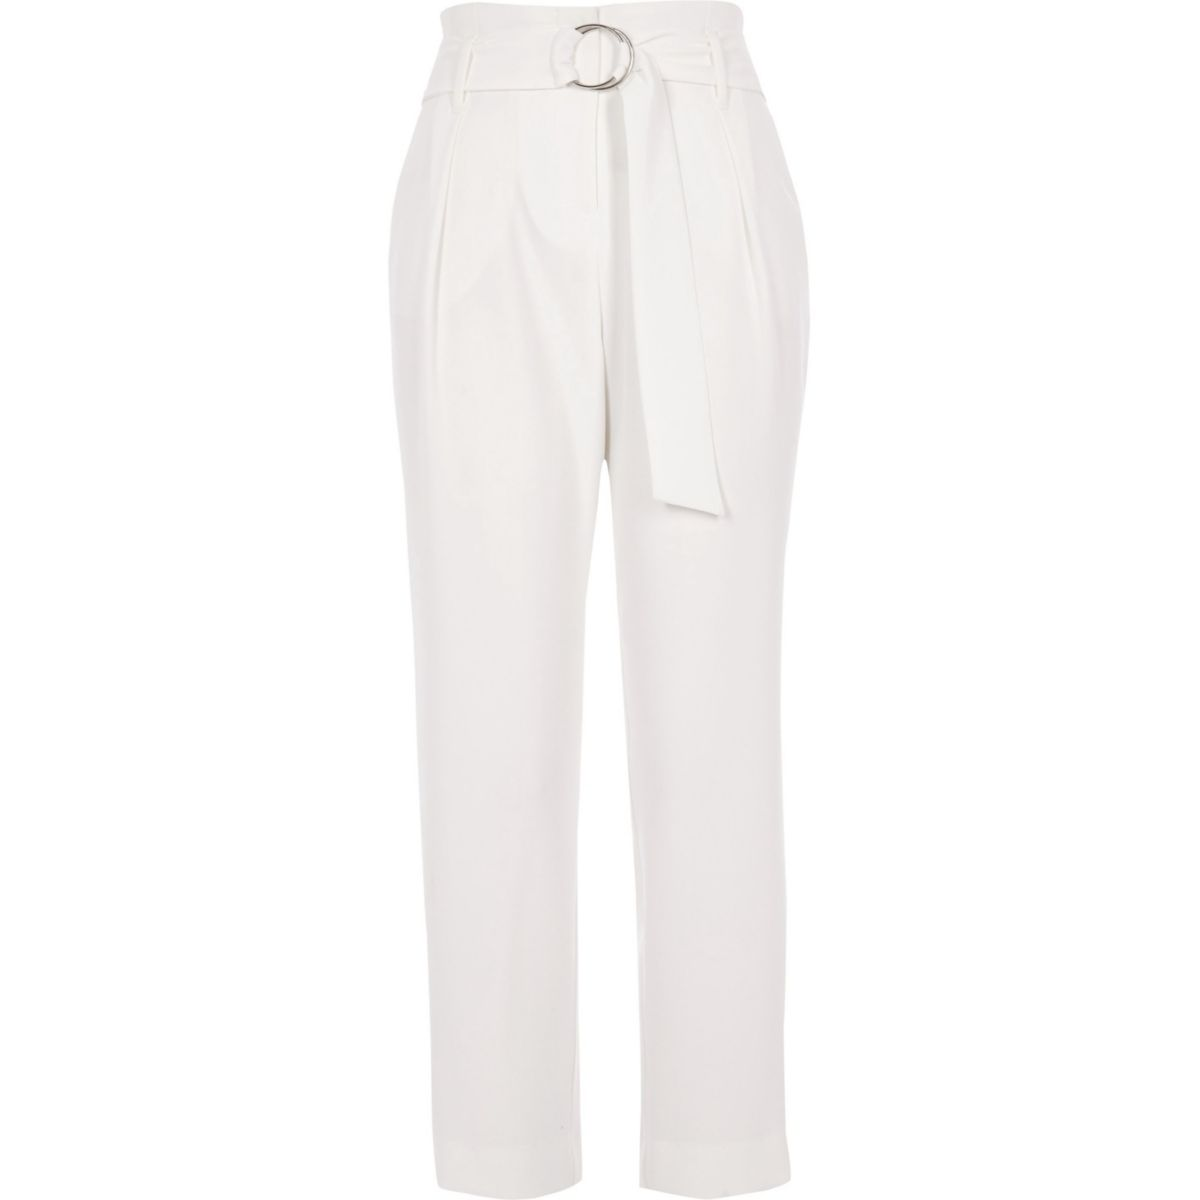 White high waisted ring belt tapered pants